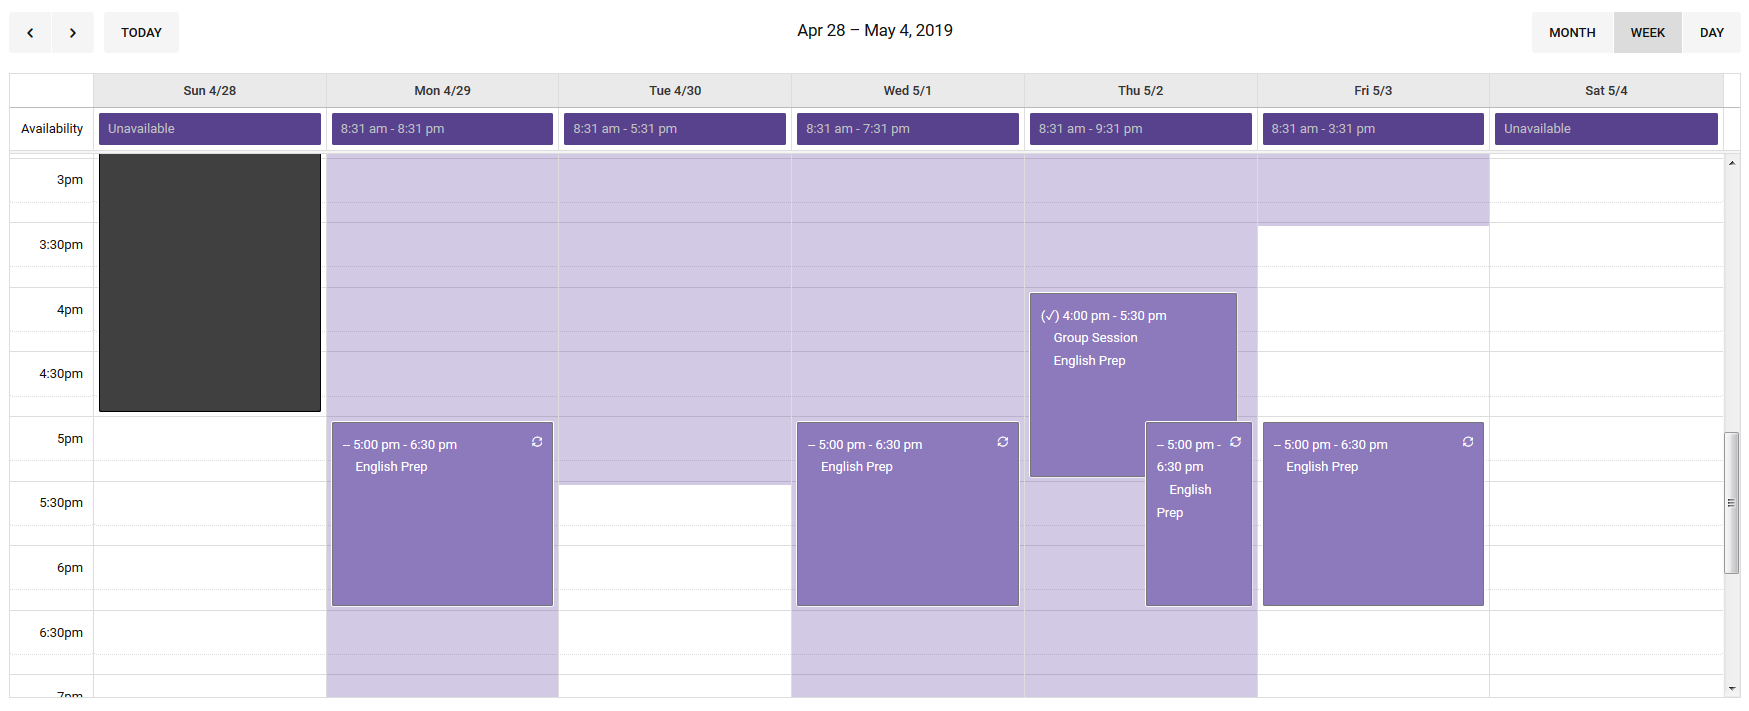 Colorful and availability scheduling image